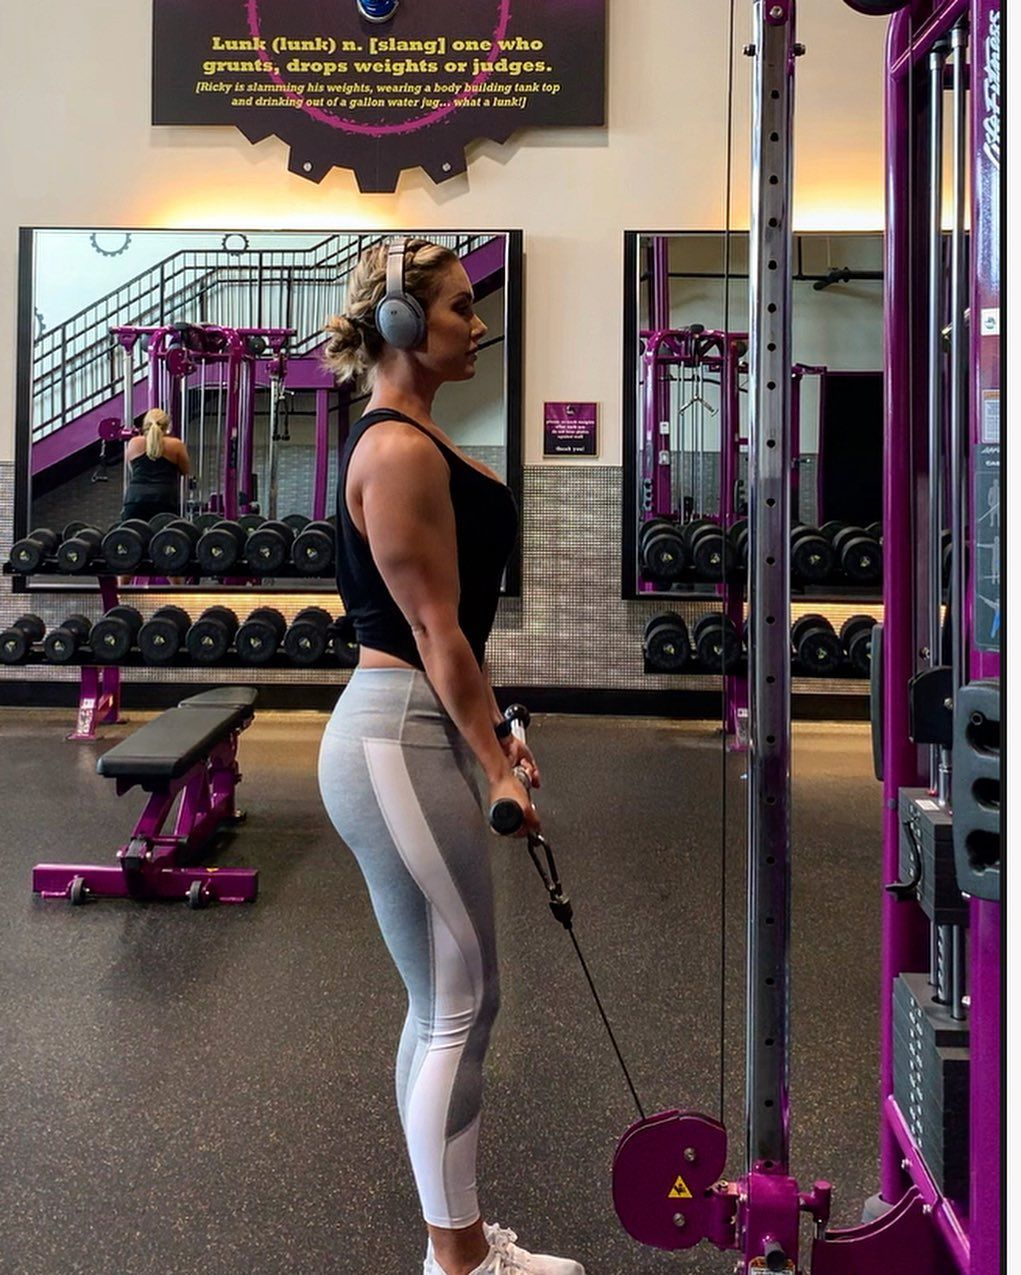 Unhappy That I Was Unable To Set Off The Lunk Alarm As Usual Planetfitness Sundayfunday Planet Fitness Workout Southern Belle Shelby Lynn